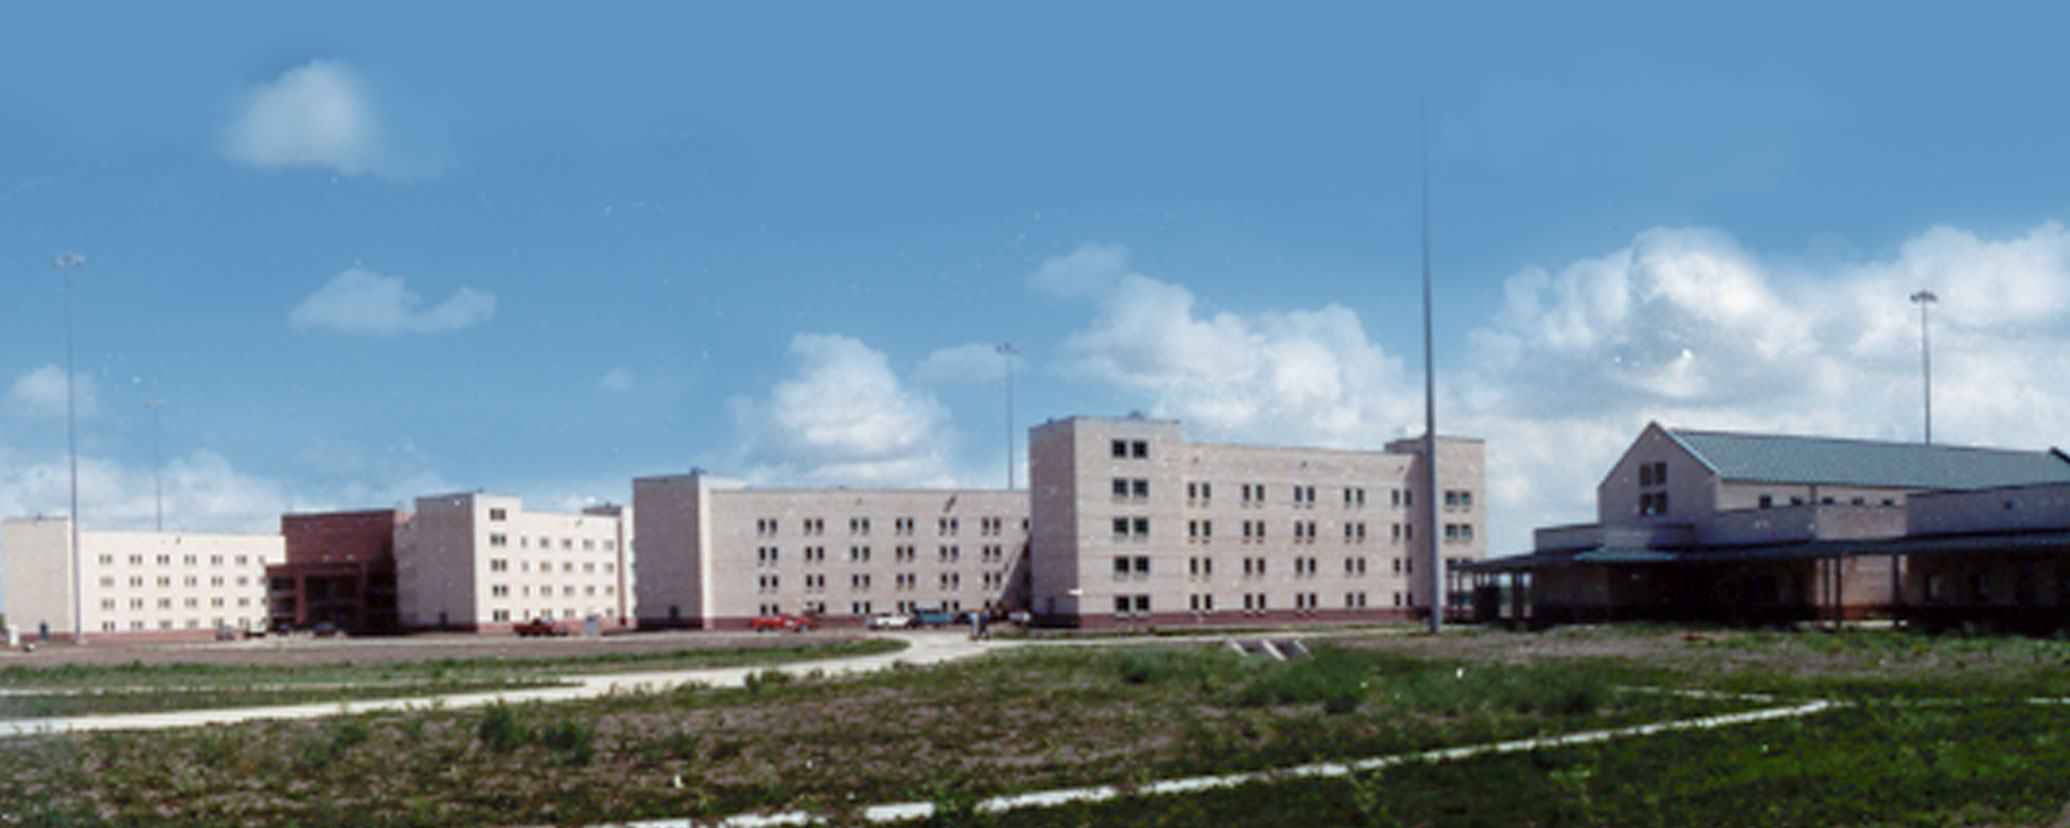 Caddell Construction - U.S Penitentiary and Federal Prision Camp- Beaumont, TX